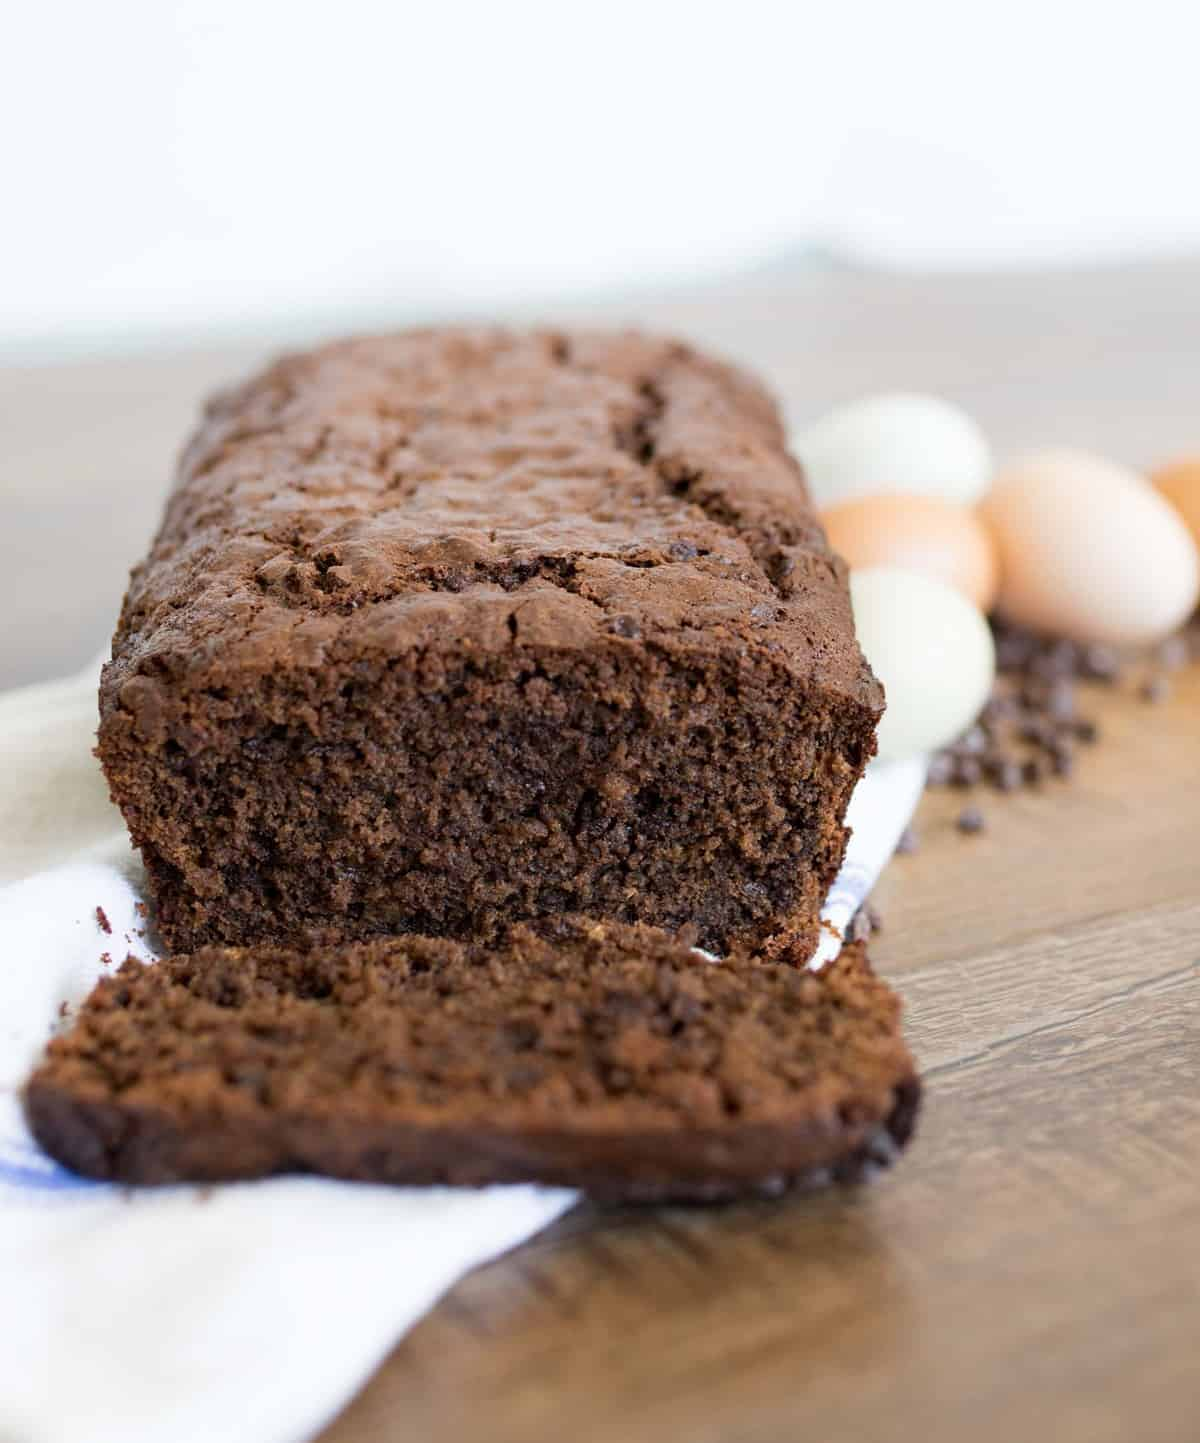 Chocolate zucchini bread that is rich, moist, and perfectly sweet with the addition of chocolate chips for good measure.